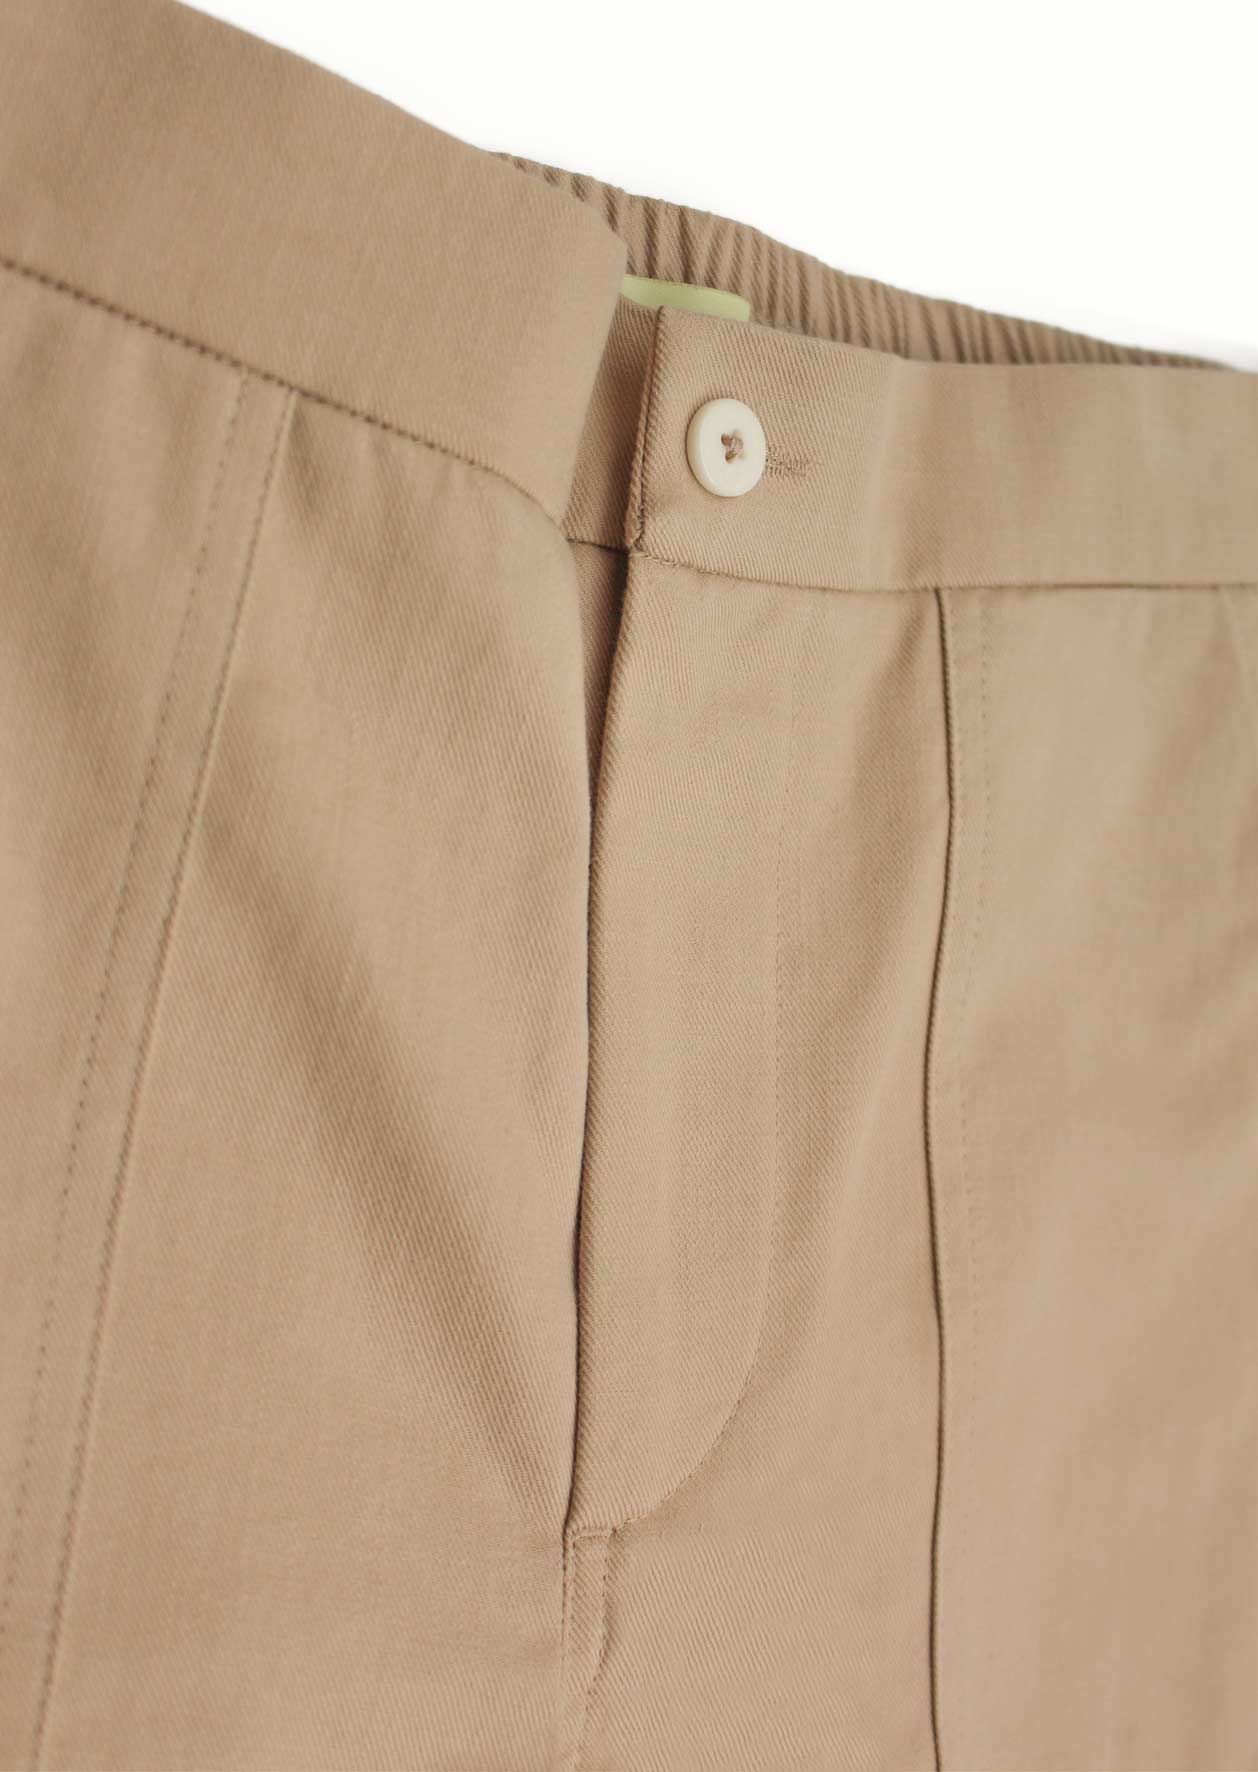 Painter's short - Organic cotton twill - Beige - De Bonne Facture